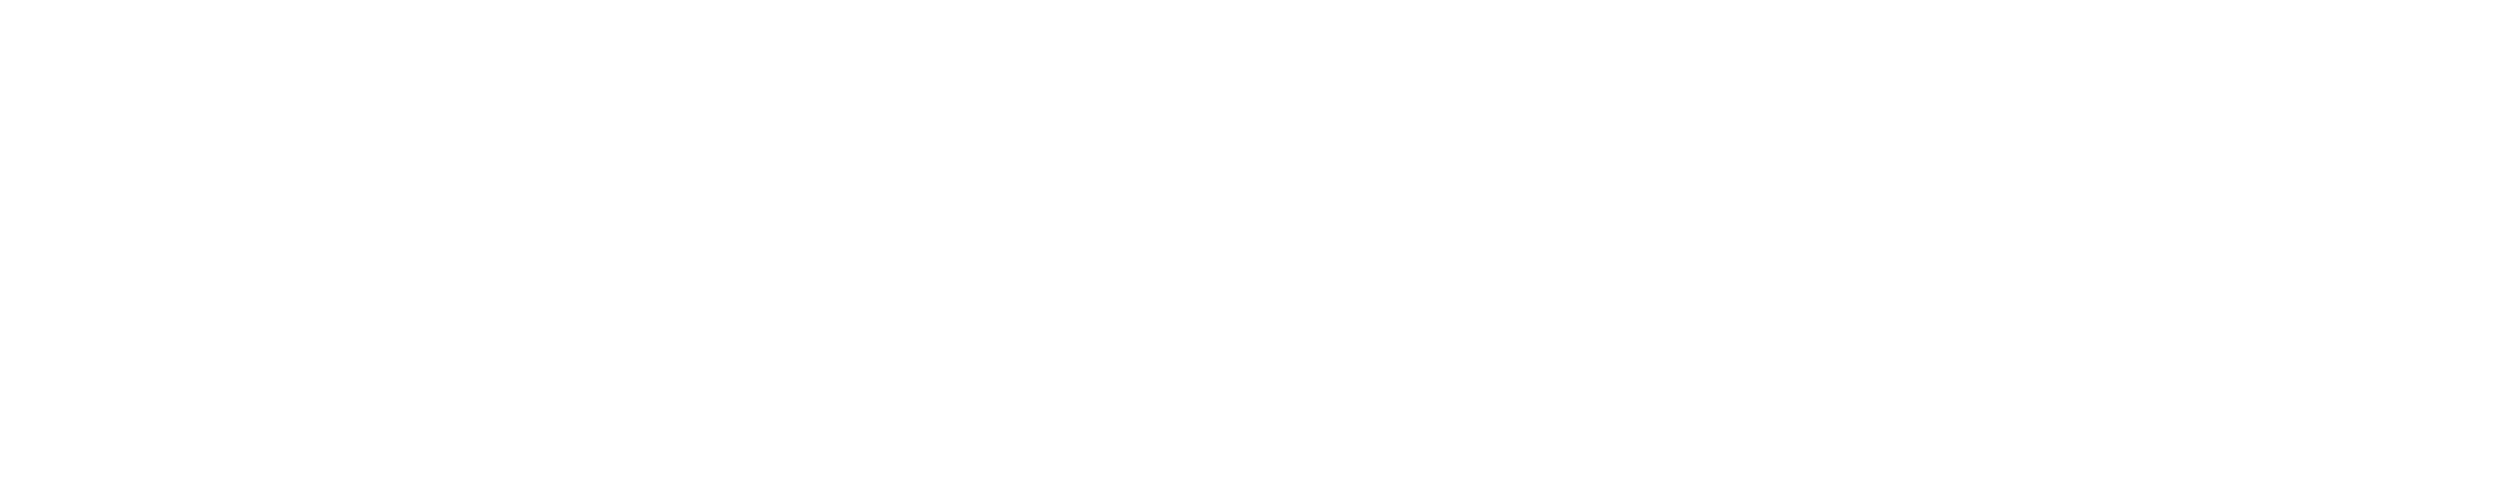 DogBlack.png